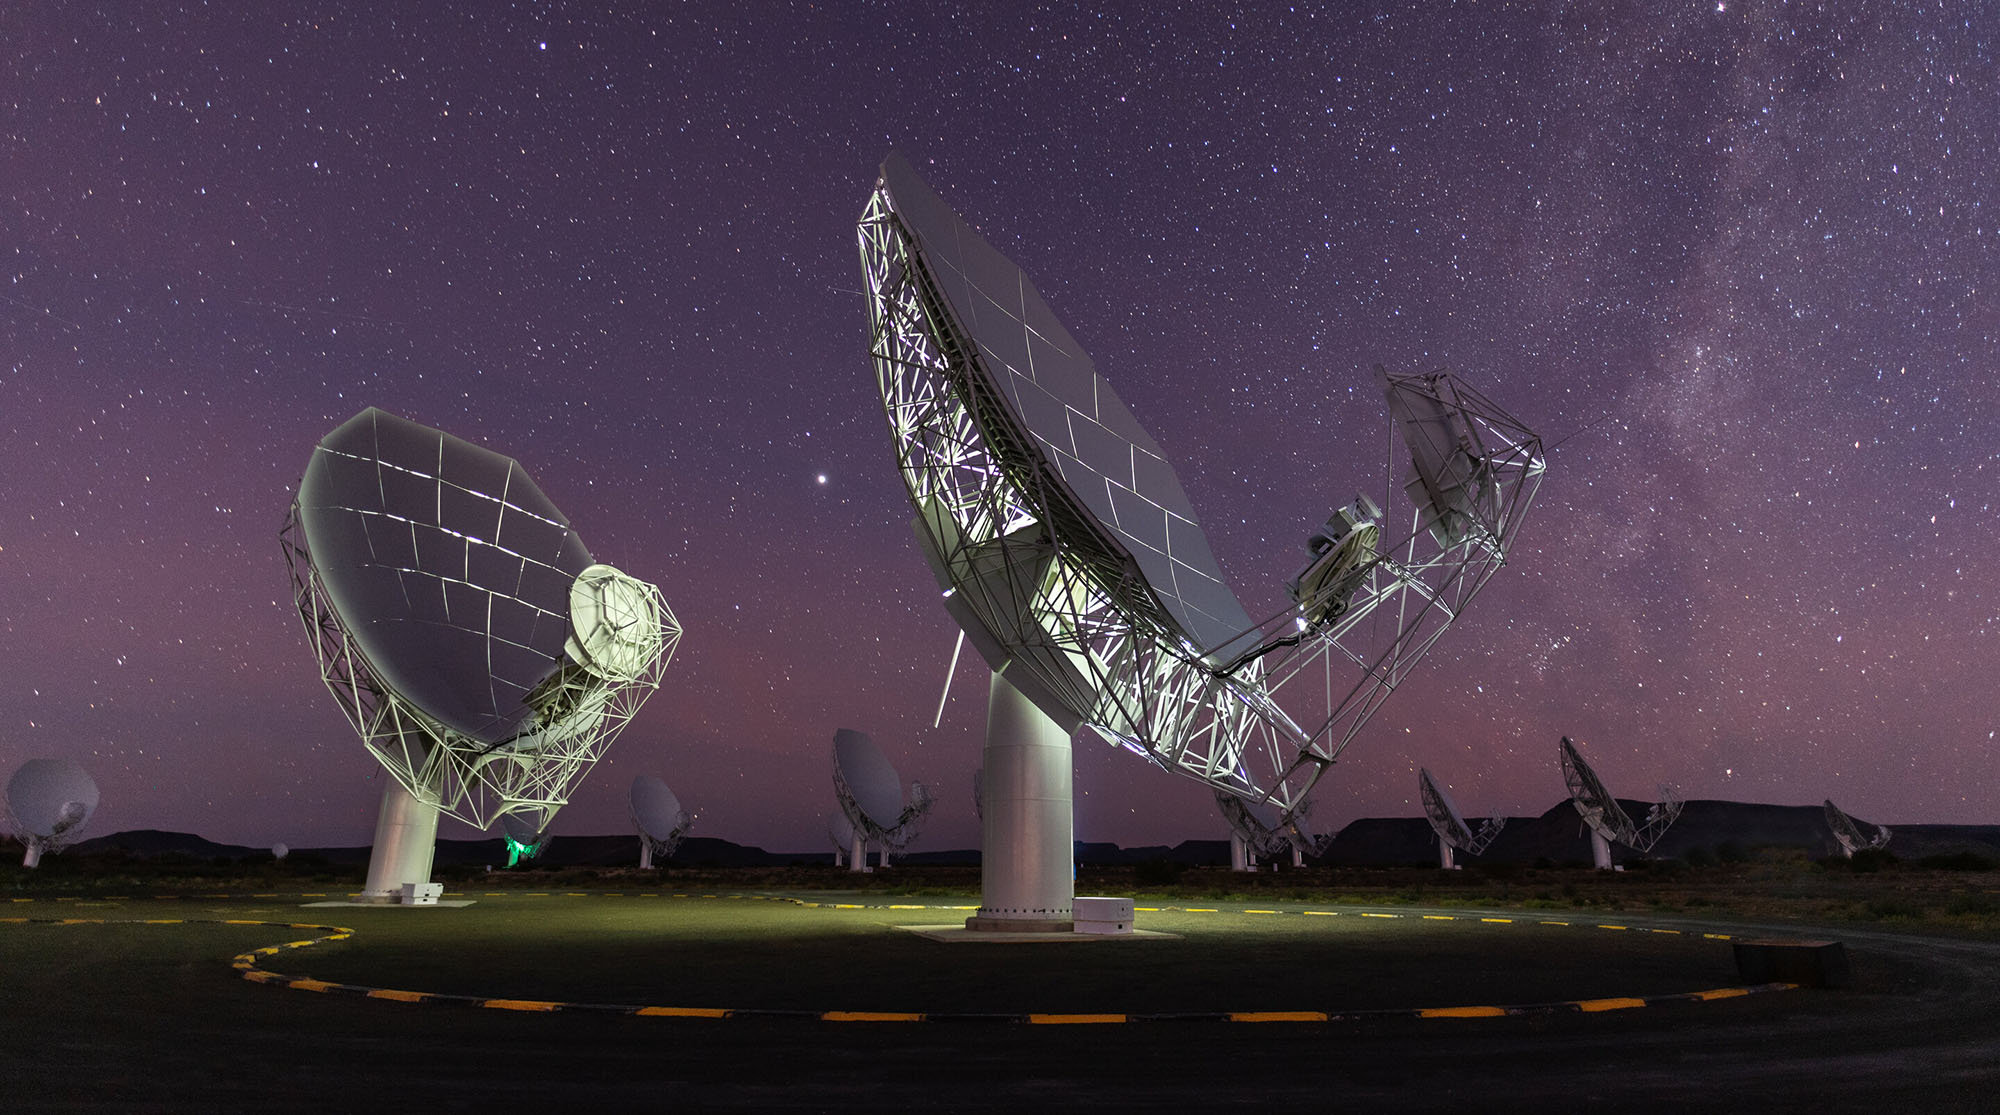 South Africa's MeerKAT finds radio galaxies that dwarf our Milky Way - Daily Maverick